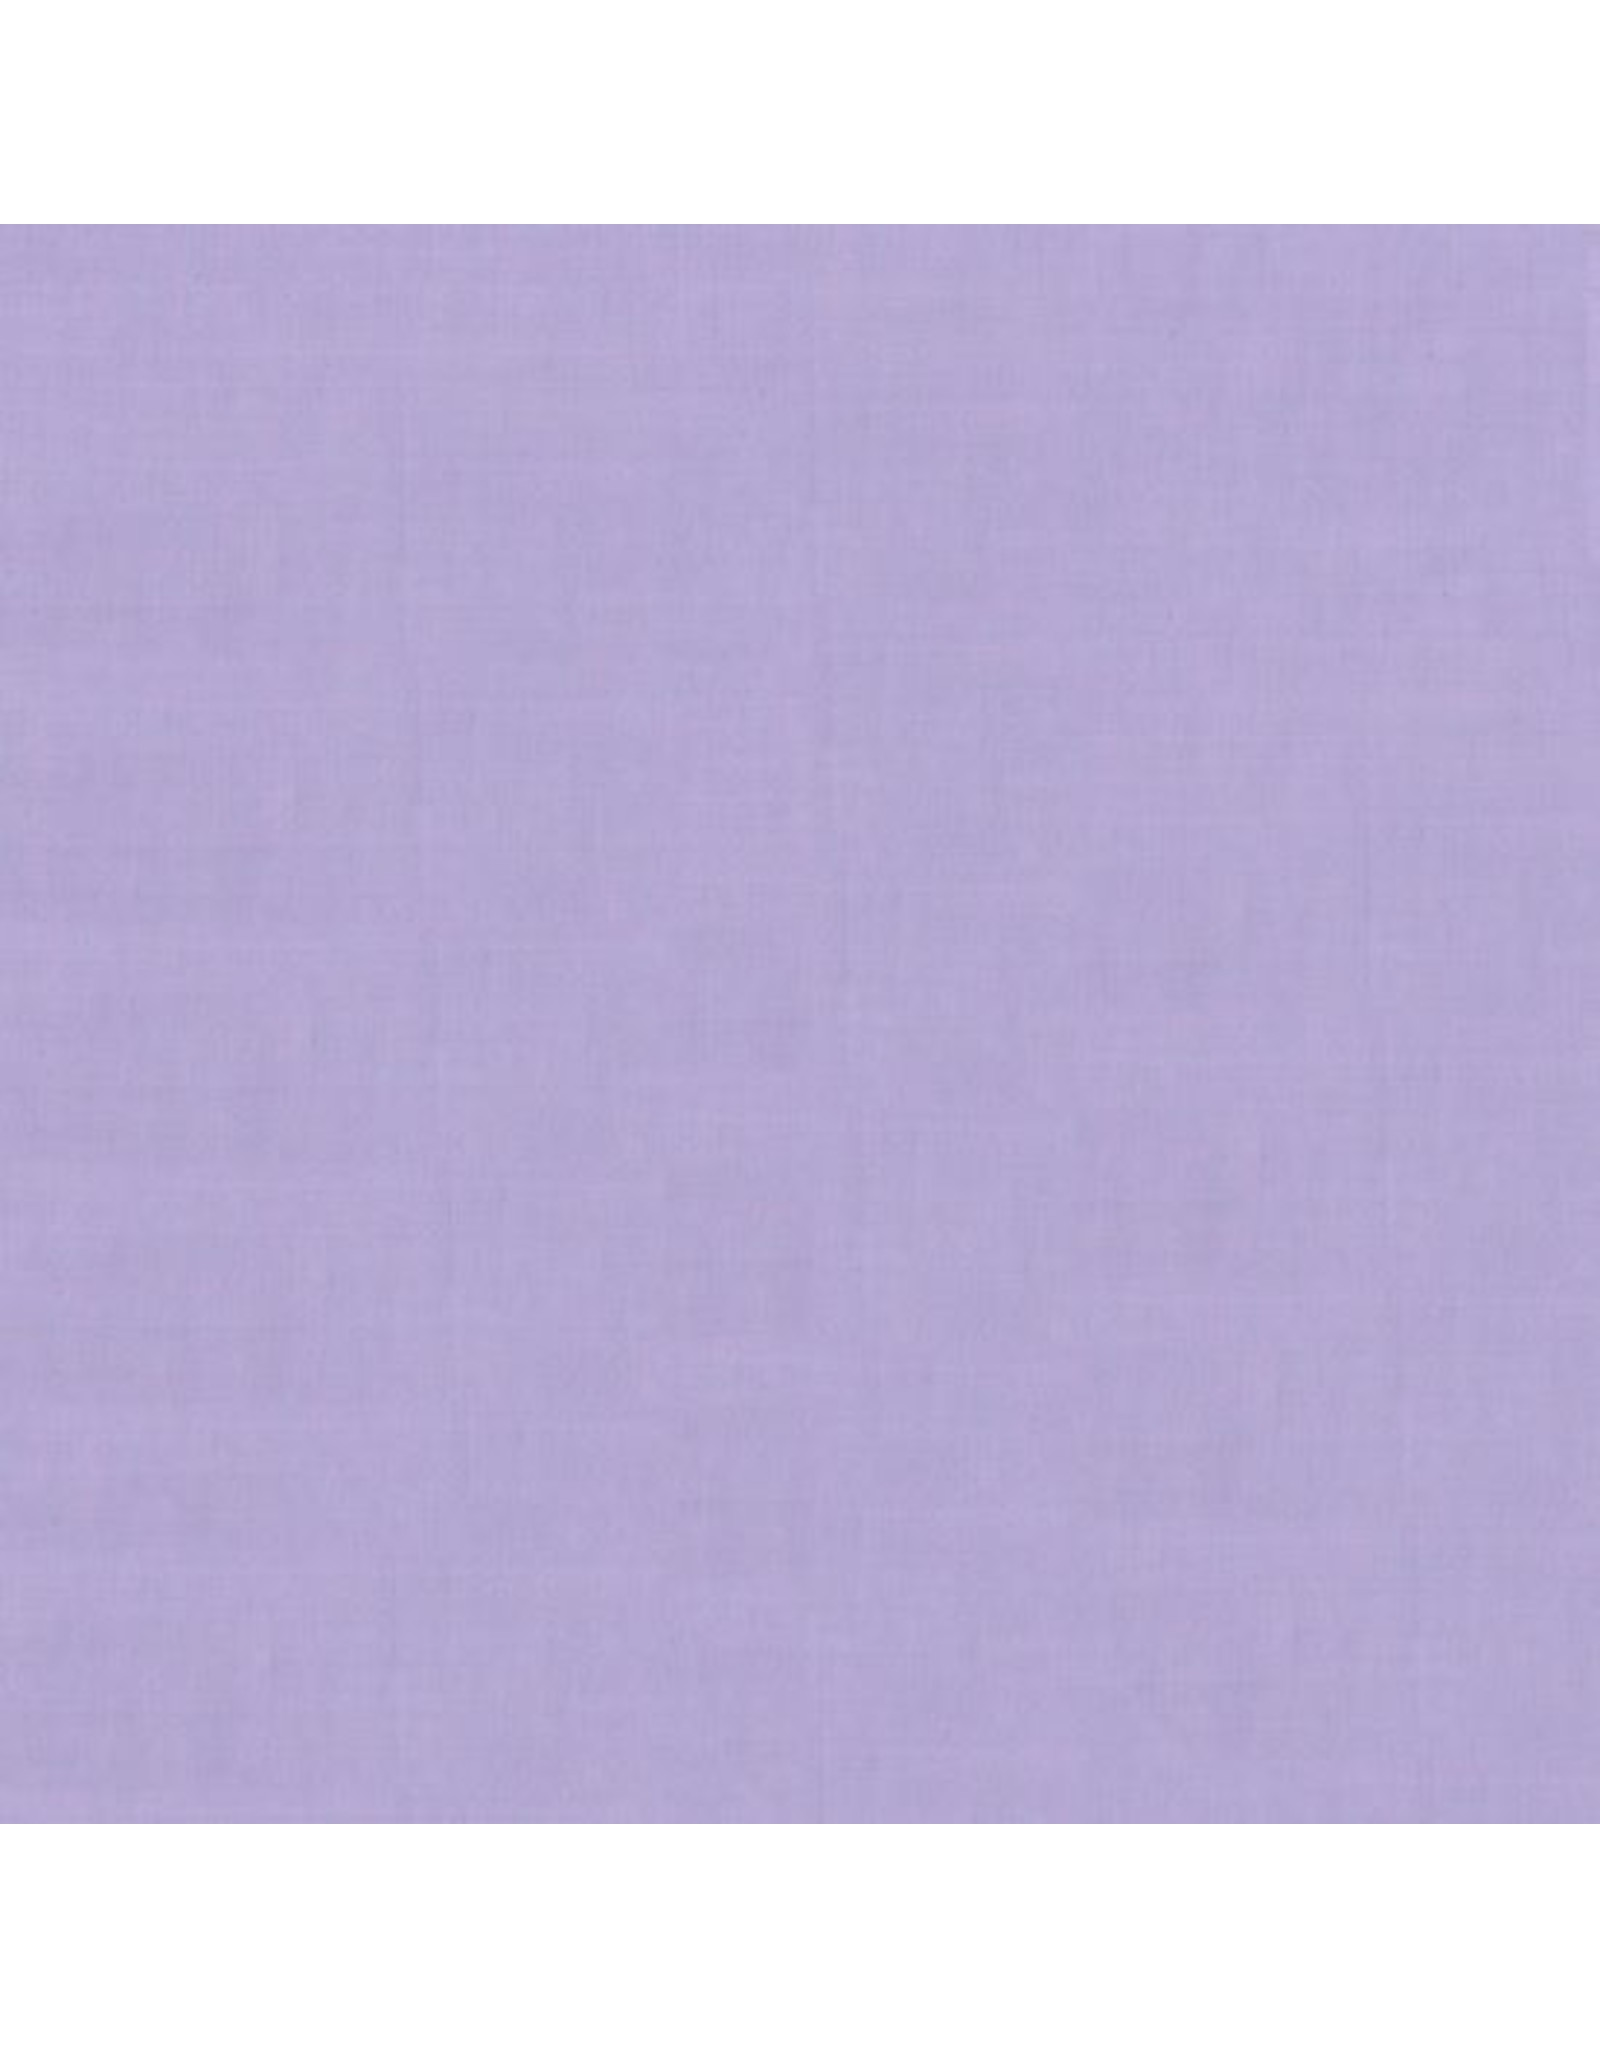 Me+You by Hoffman Fabrics Indah Solids - Lilac